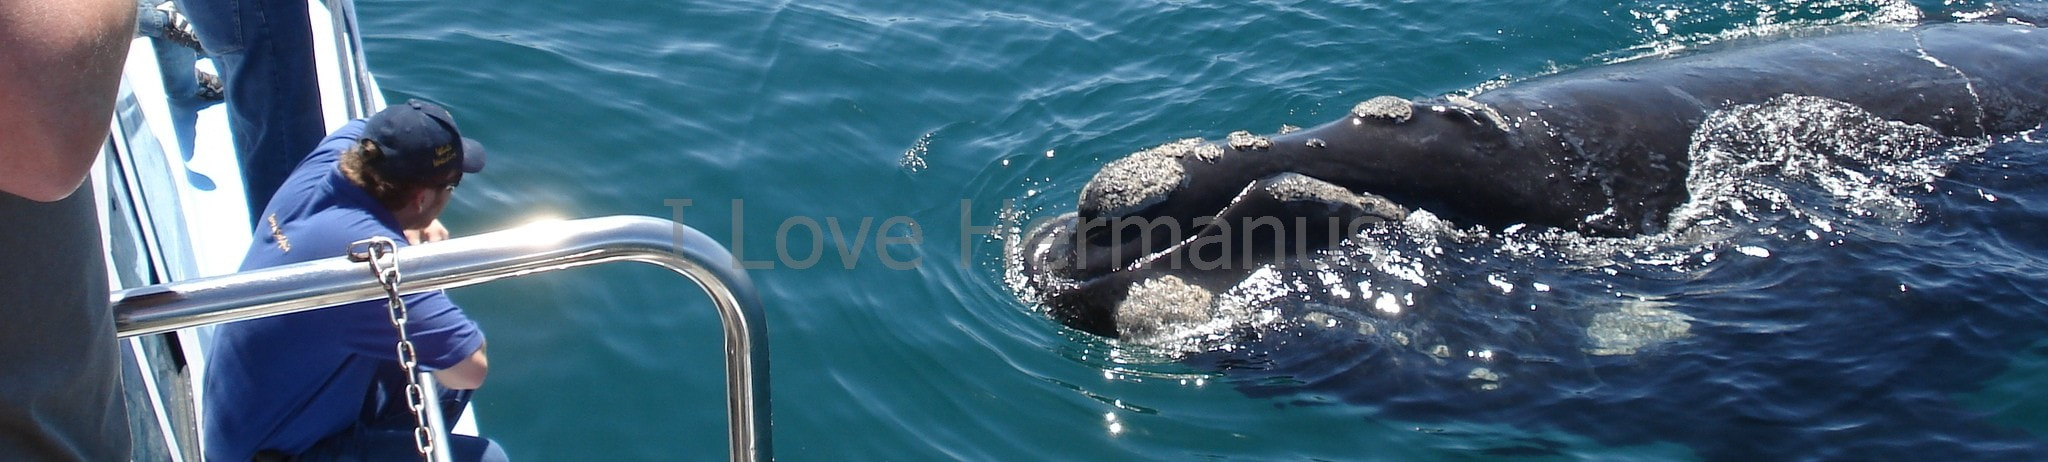 Whale Watching boat trips in Hermanus are truly amazing -  I ❤️ Hermanus